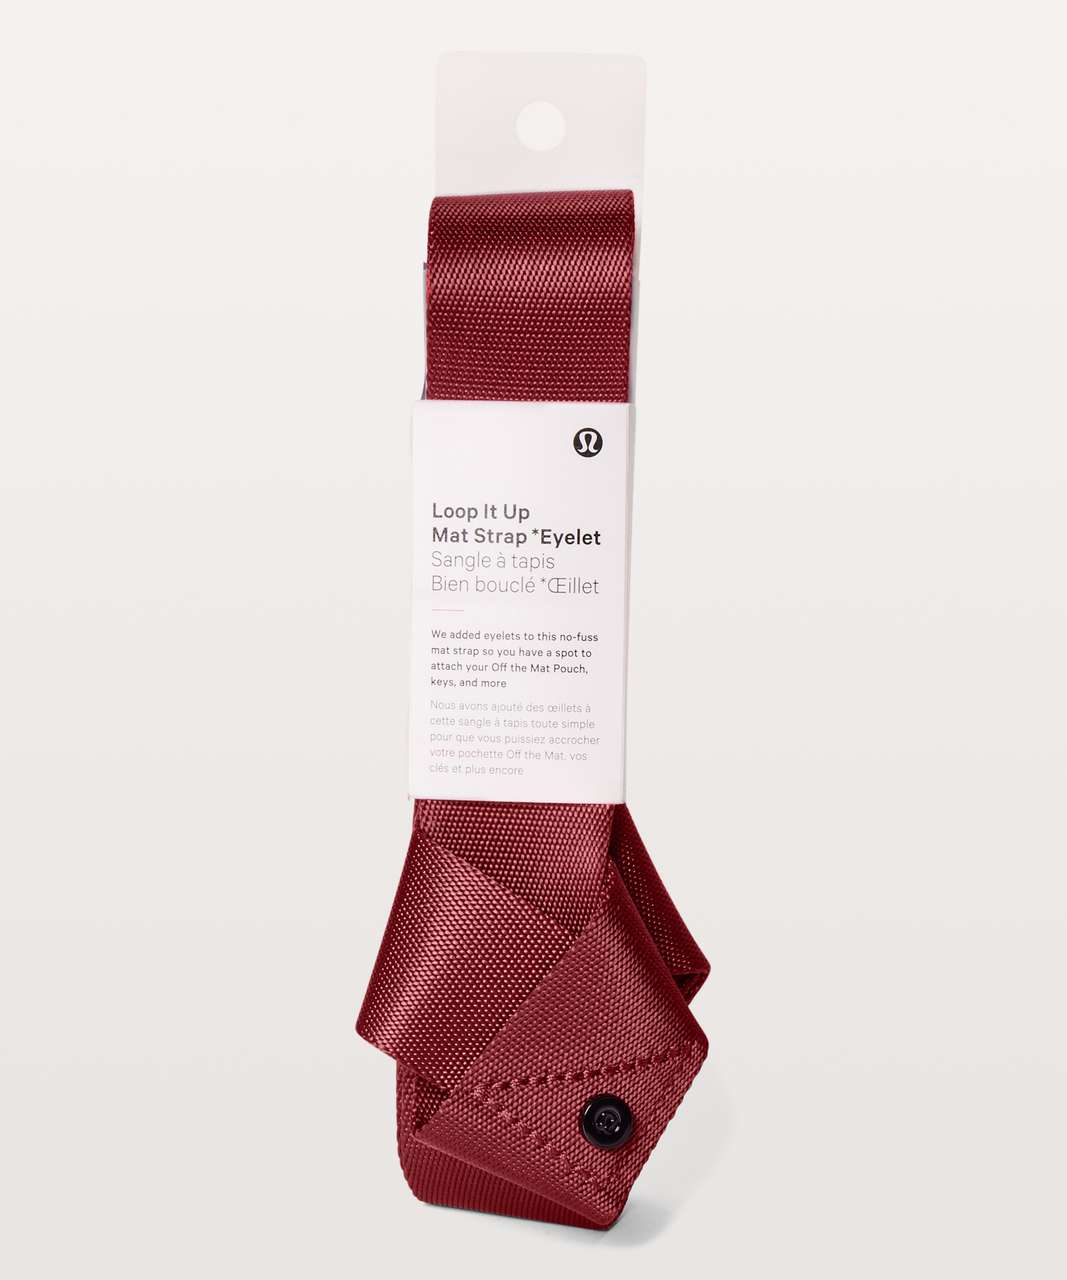 Lululemon Loop It Up Mat Strap *Eyelet - Dark Canyon